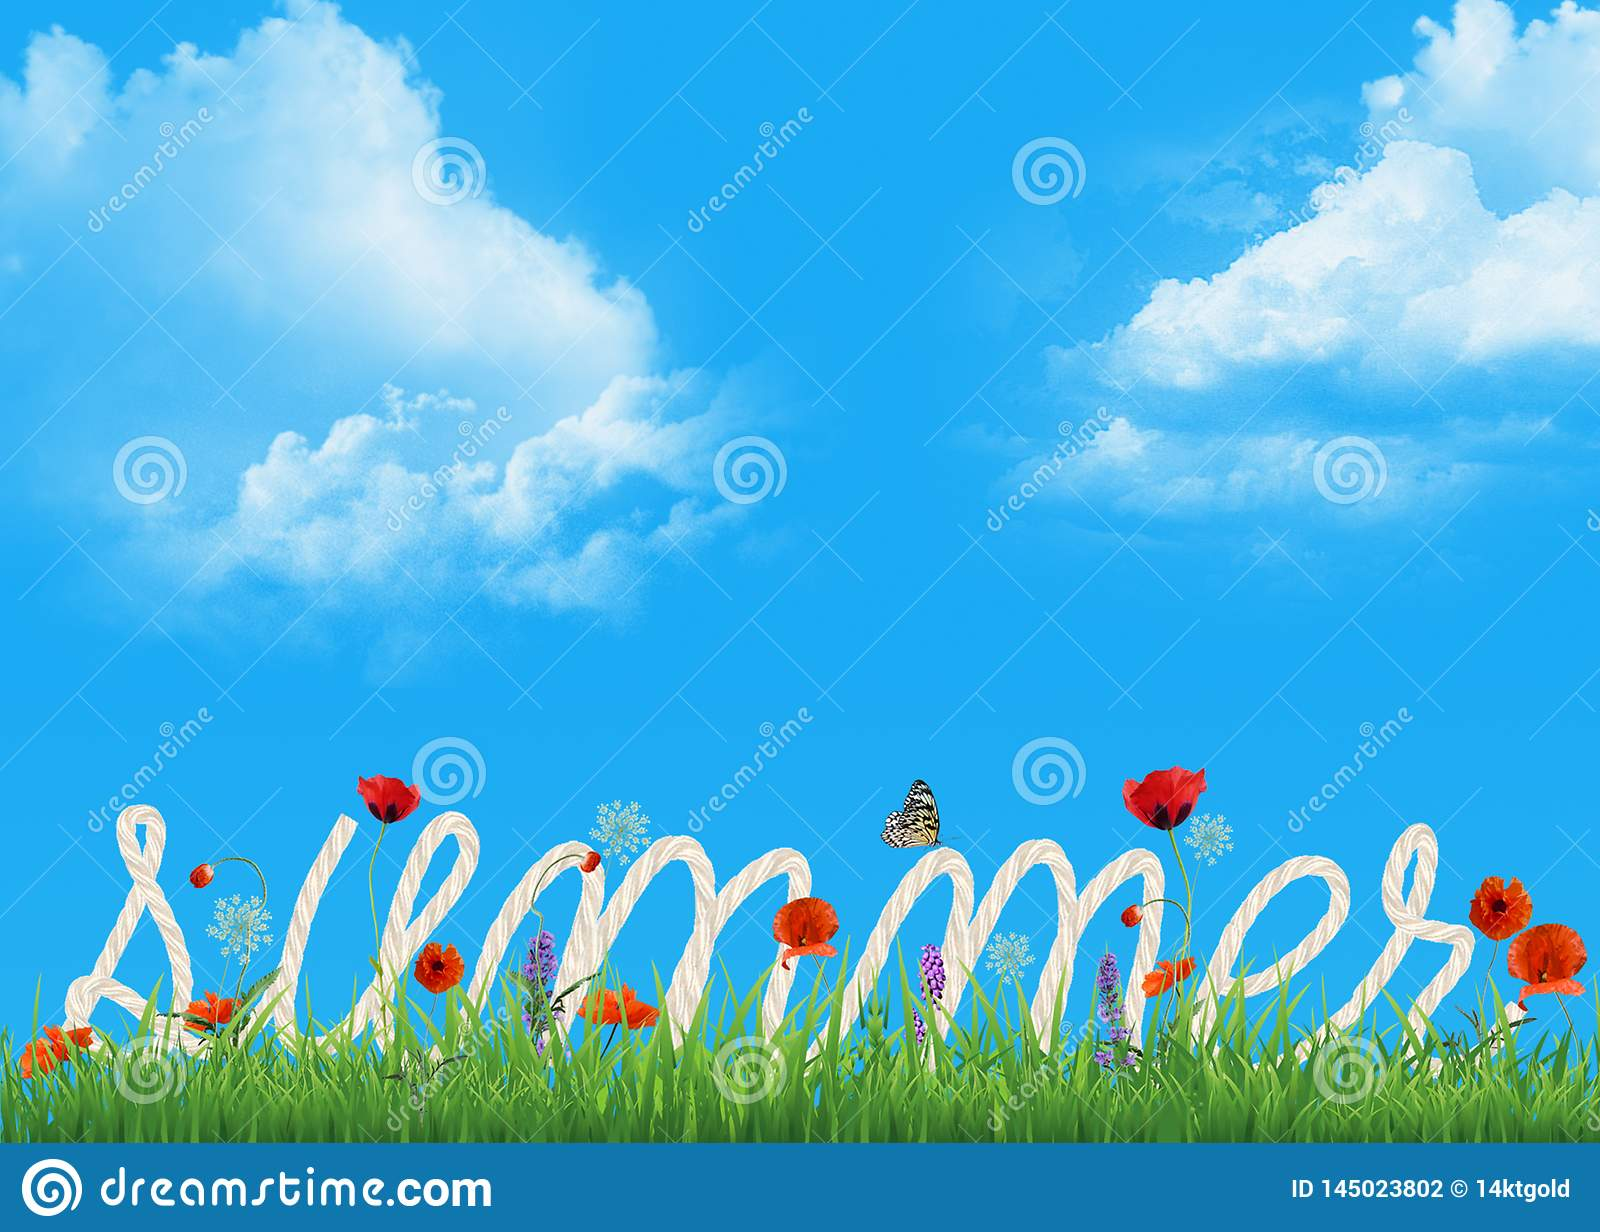 Summer rope text in grass